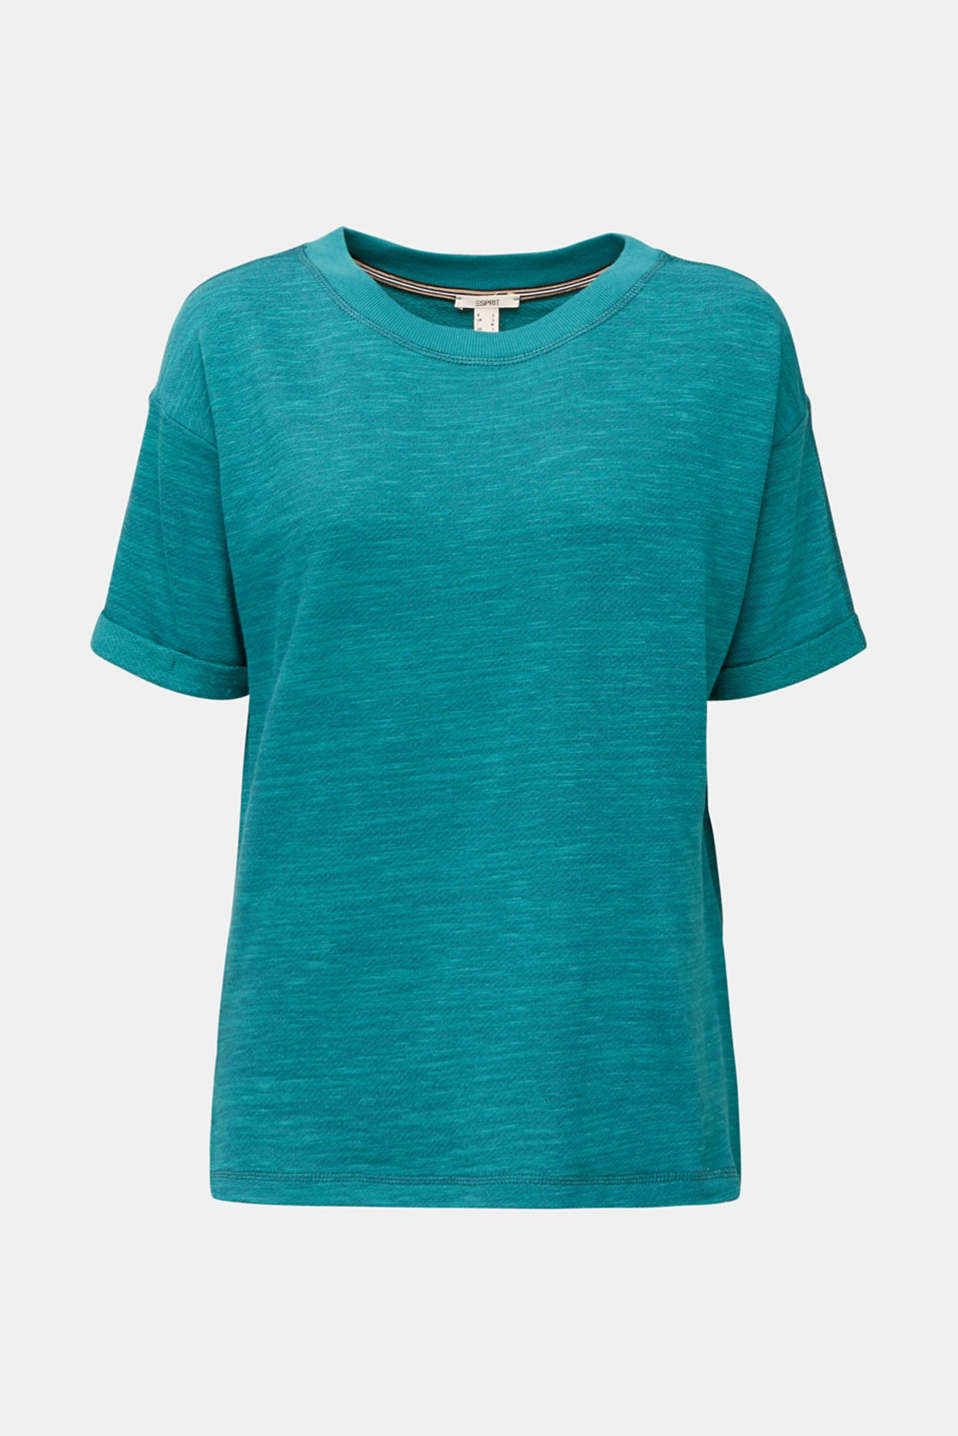 Textured top in blended cotton, TEAL GREEN, detail image number 6